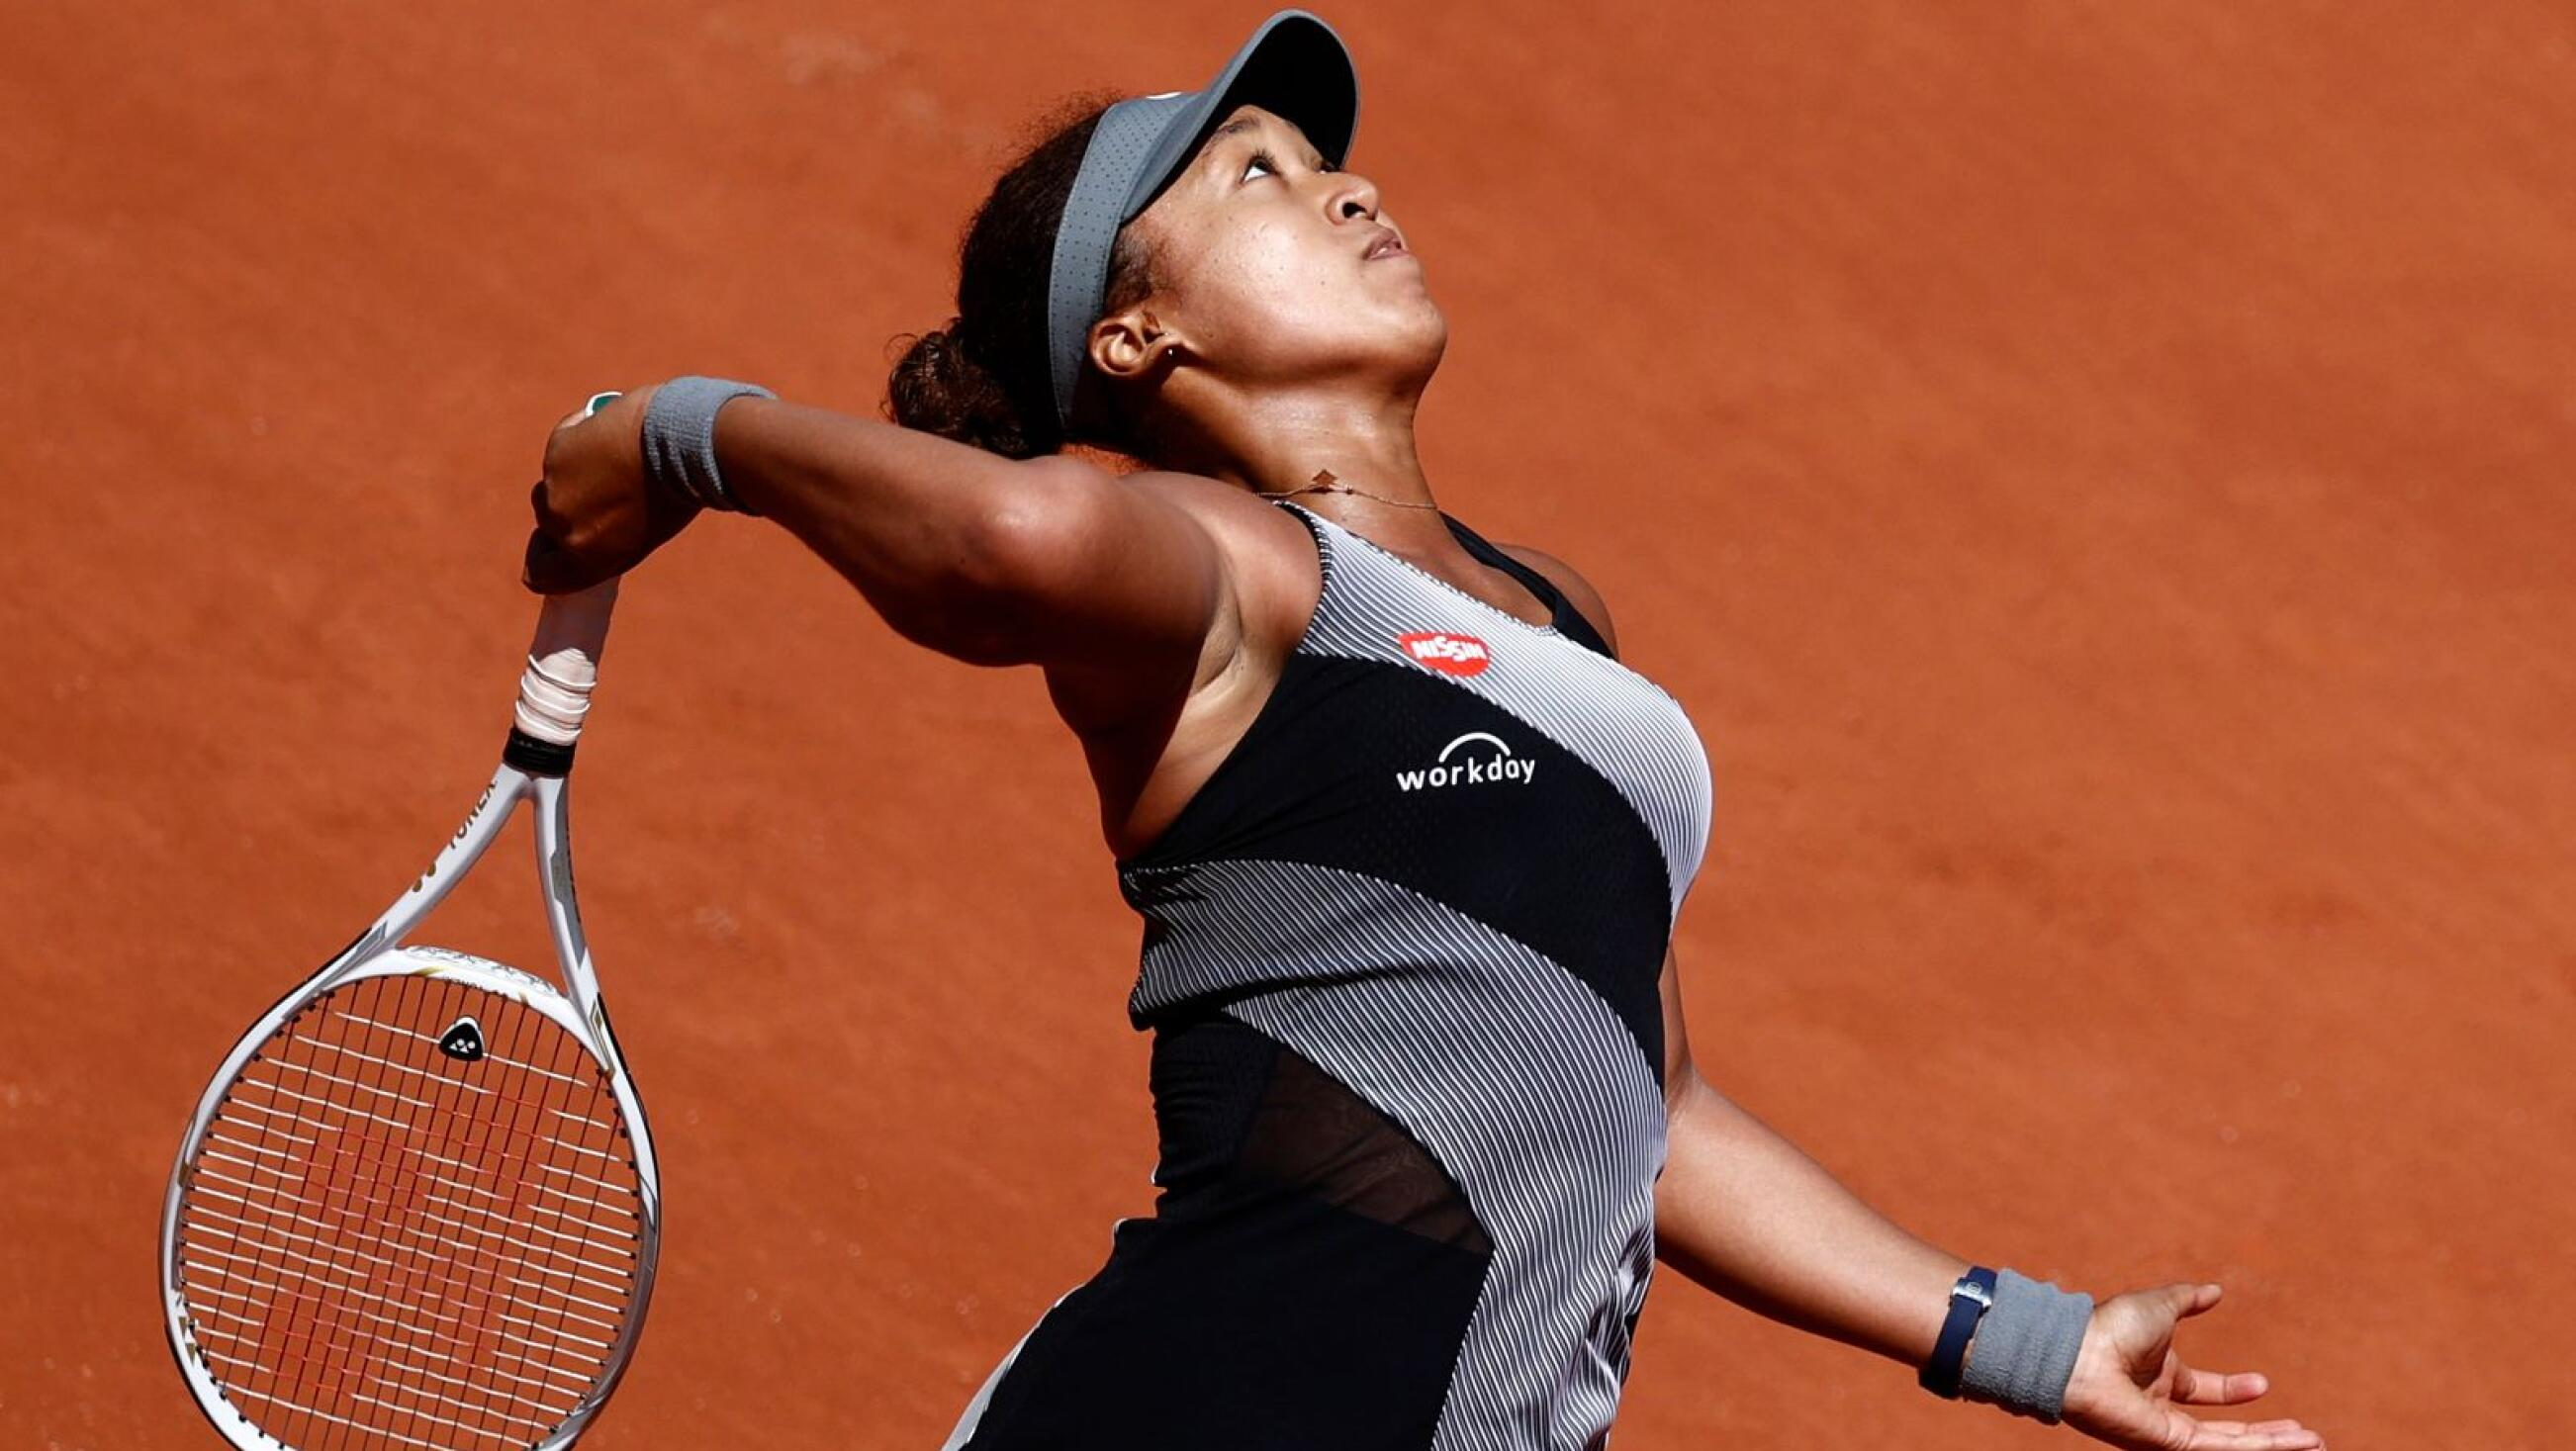 Japan's Naomi Osaka in action during her French Open first round match against Romania's Patricia Maria Tig